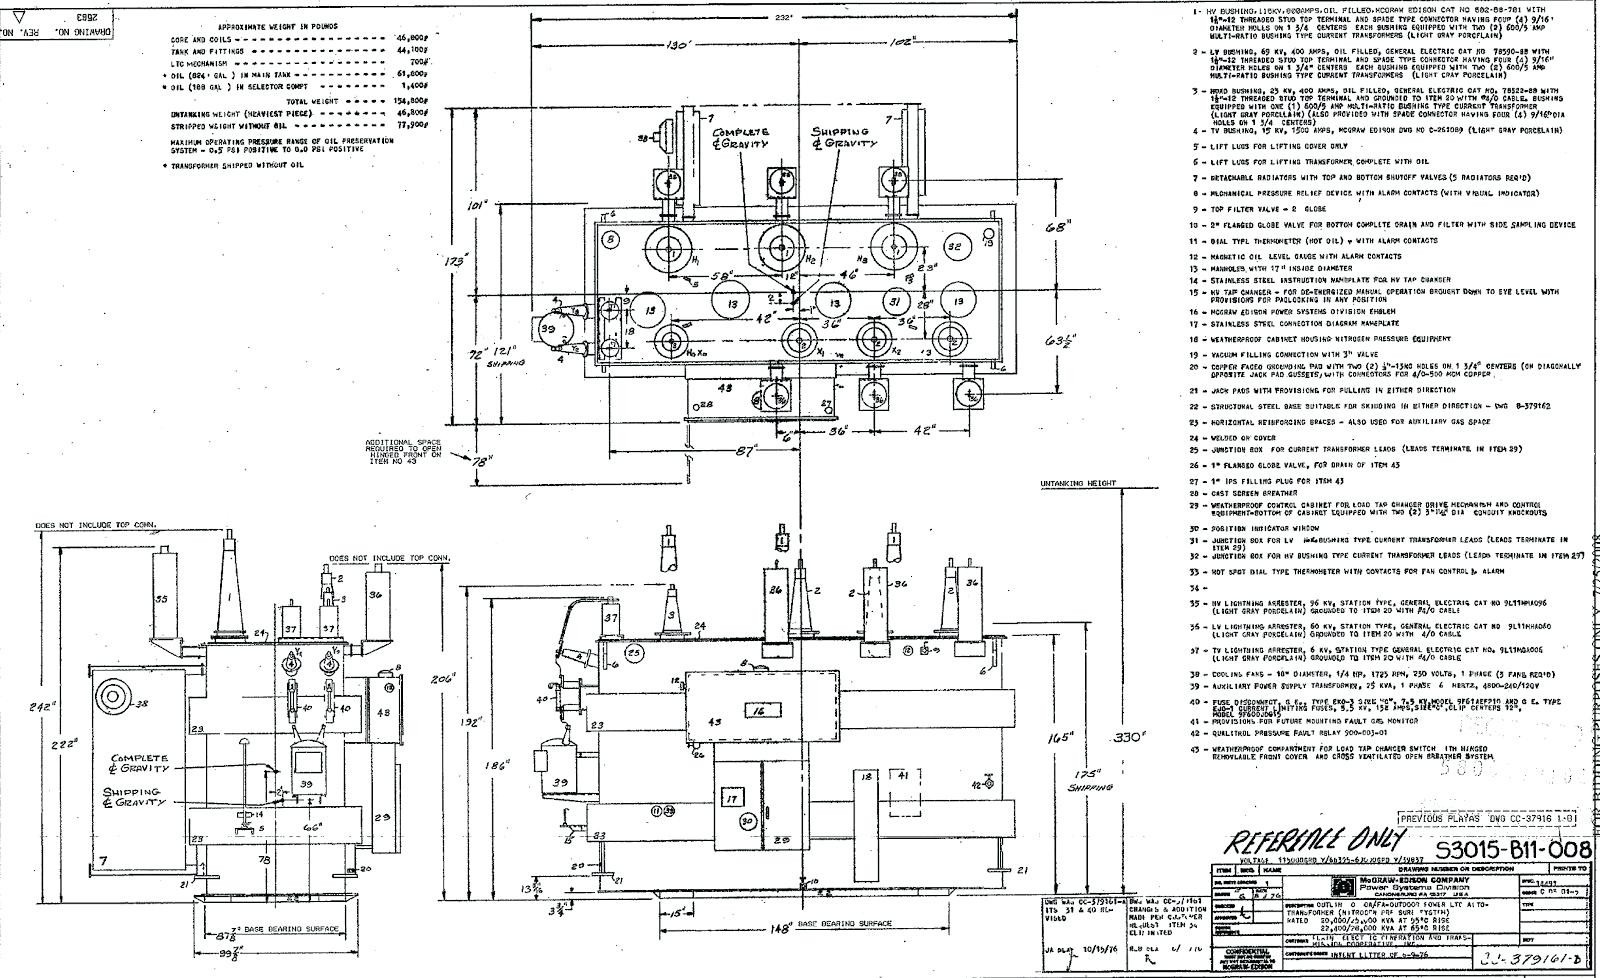 1991 Ford Tempo Wiring Diagram. Ford. Auto Wiring Diagram